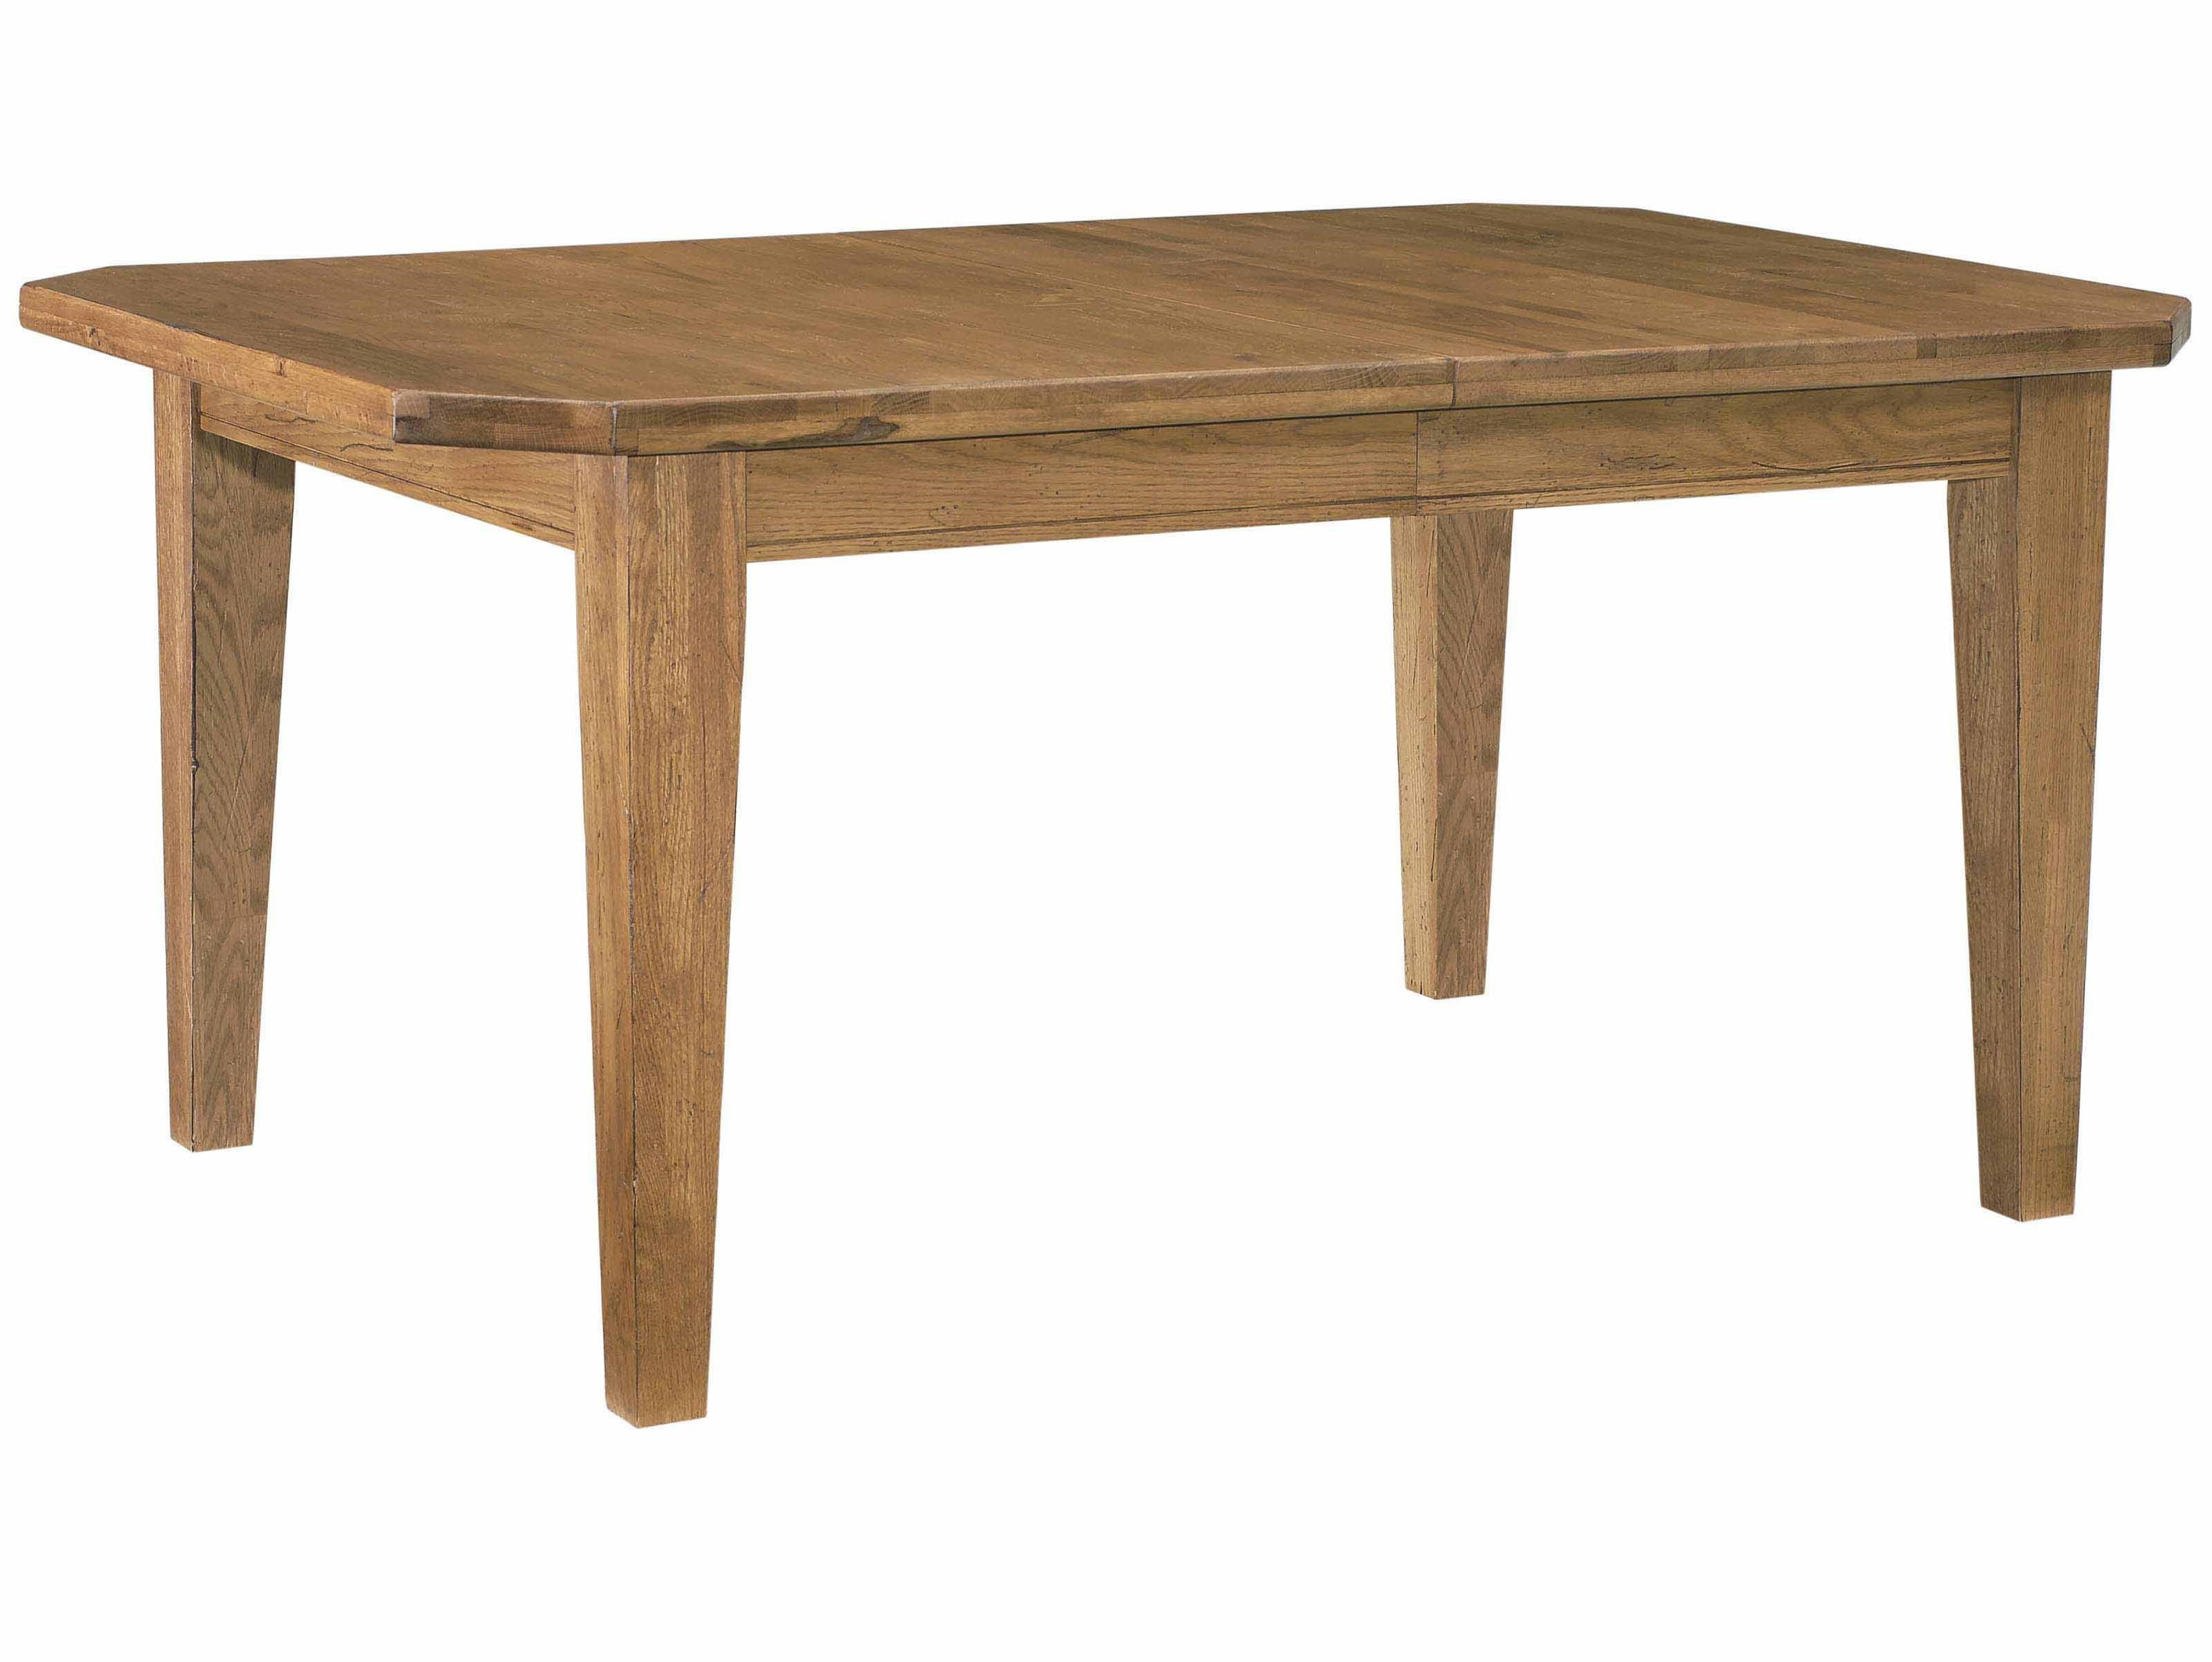 Broyhill Furniture Attic Heirlooms Counter Height Dining Table With Leaf